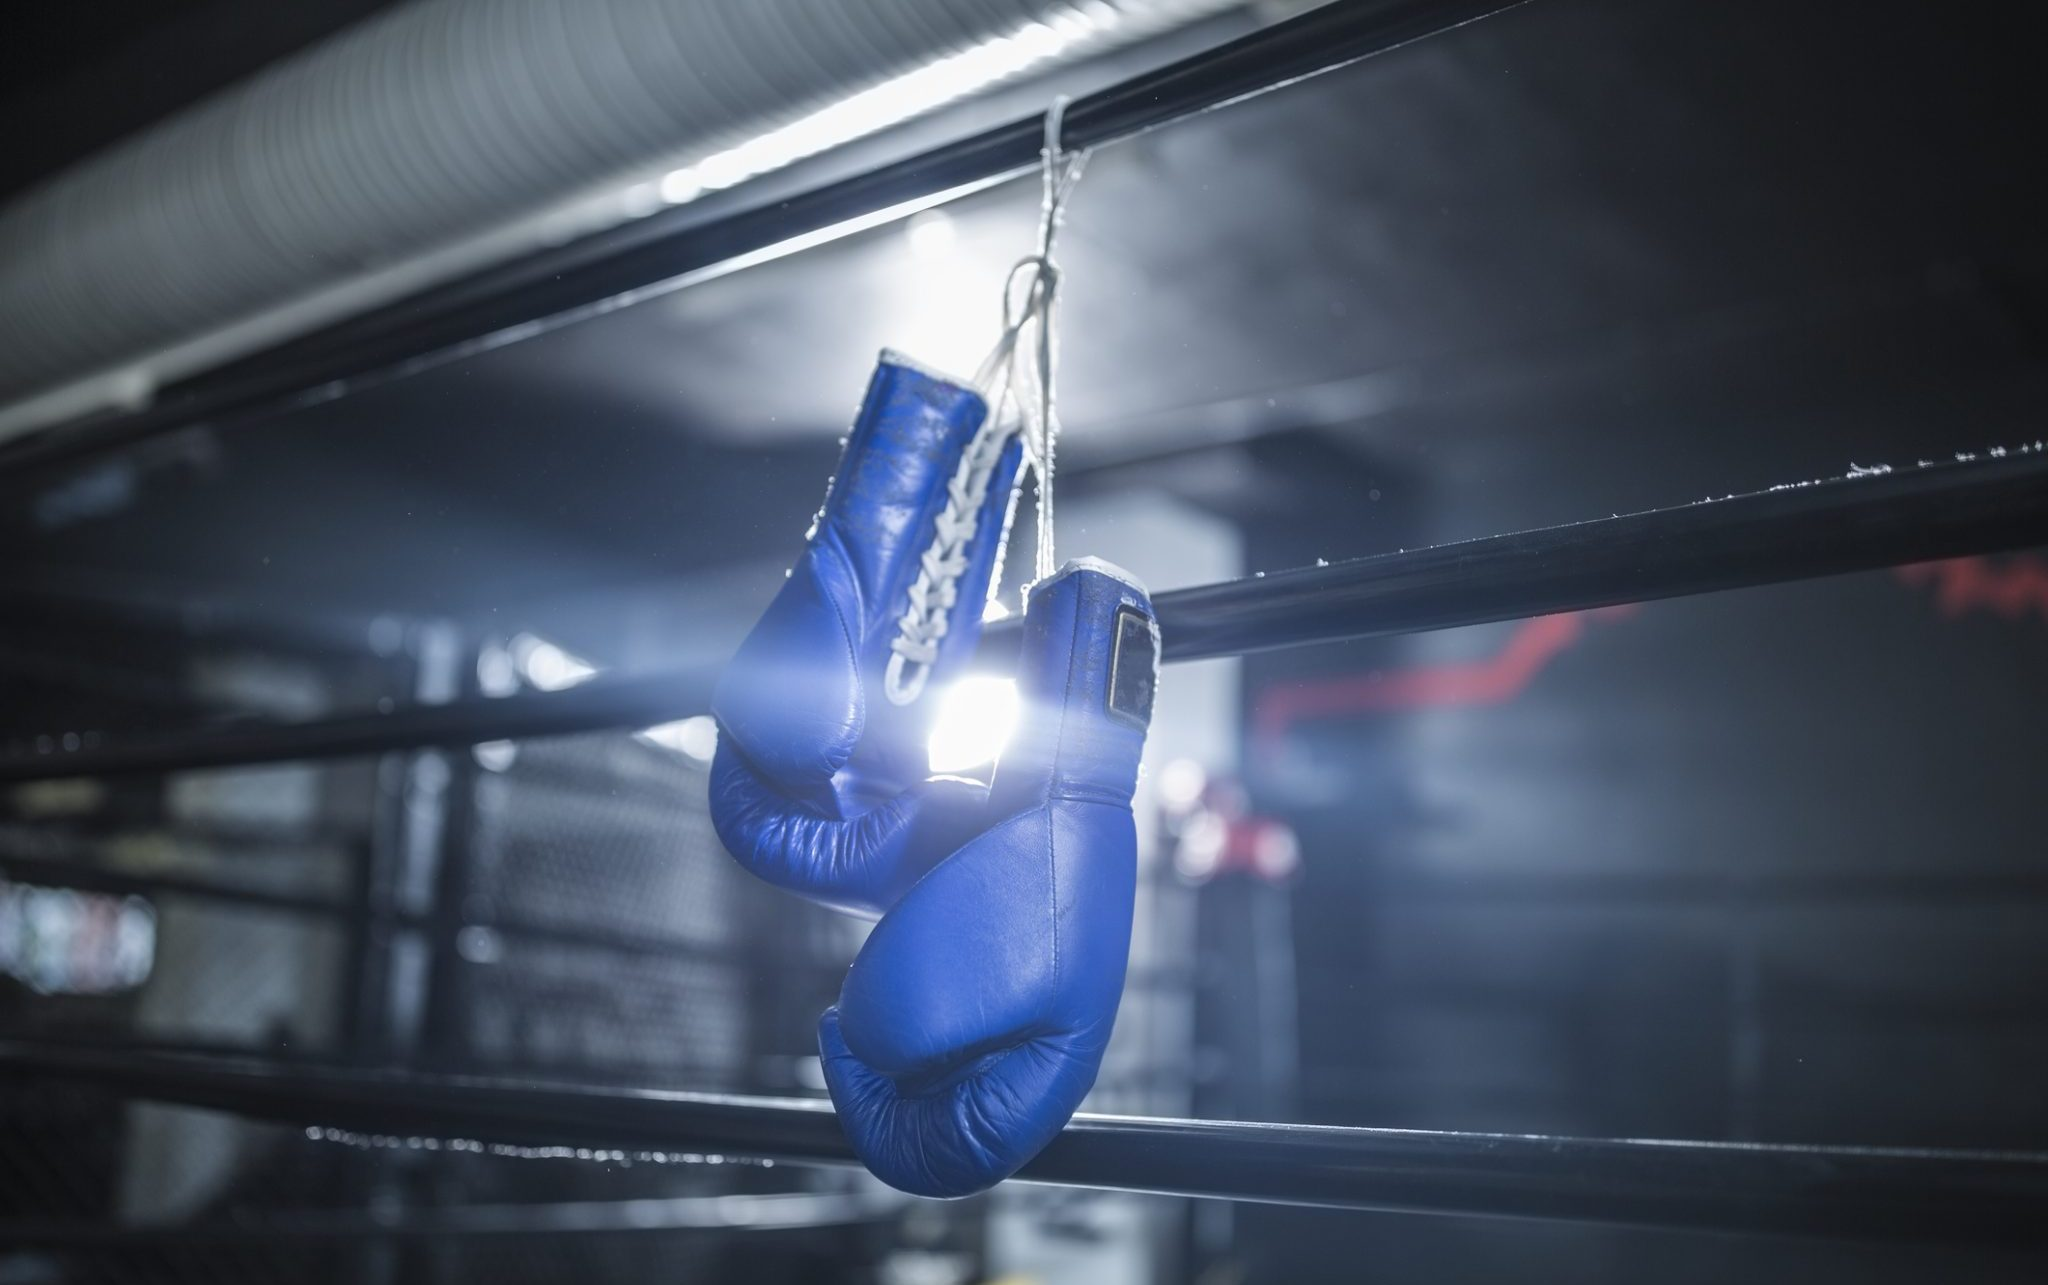 endurance athletes pandemic boxing gloves